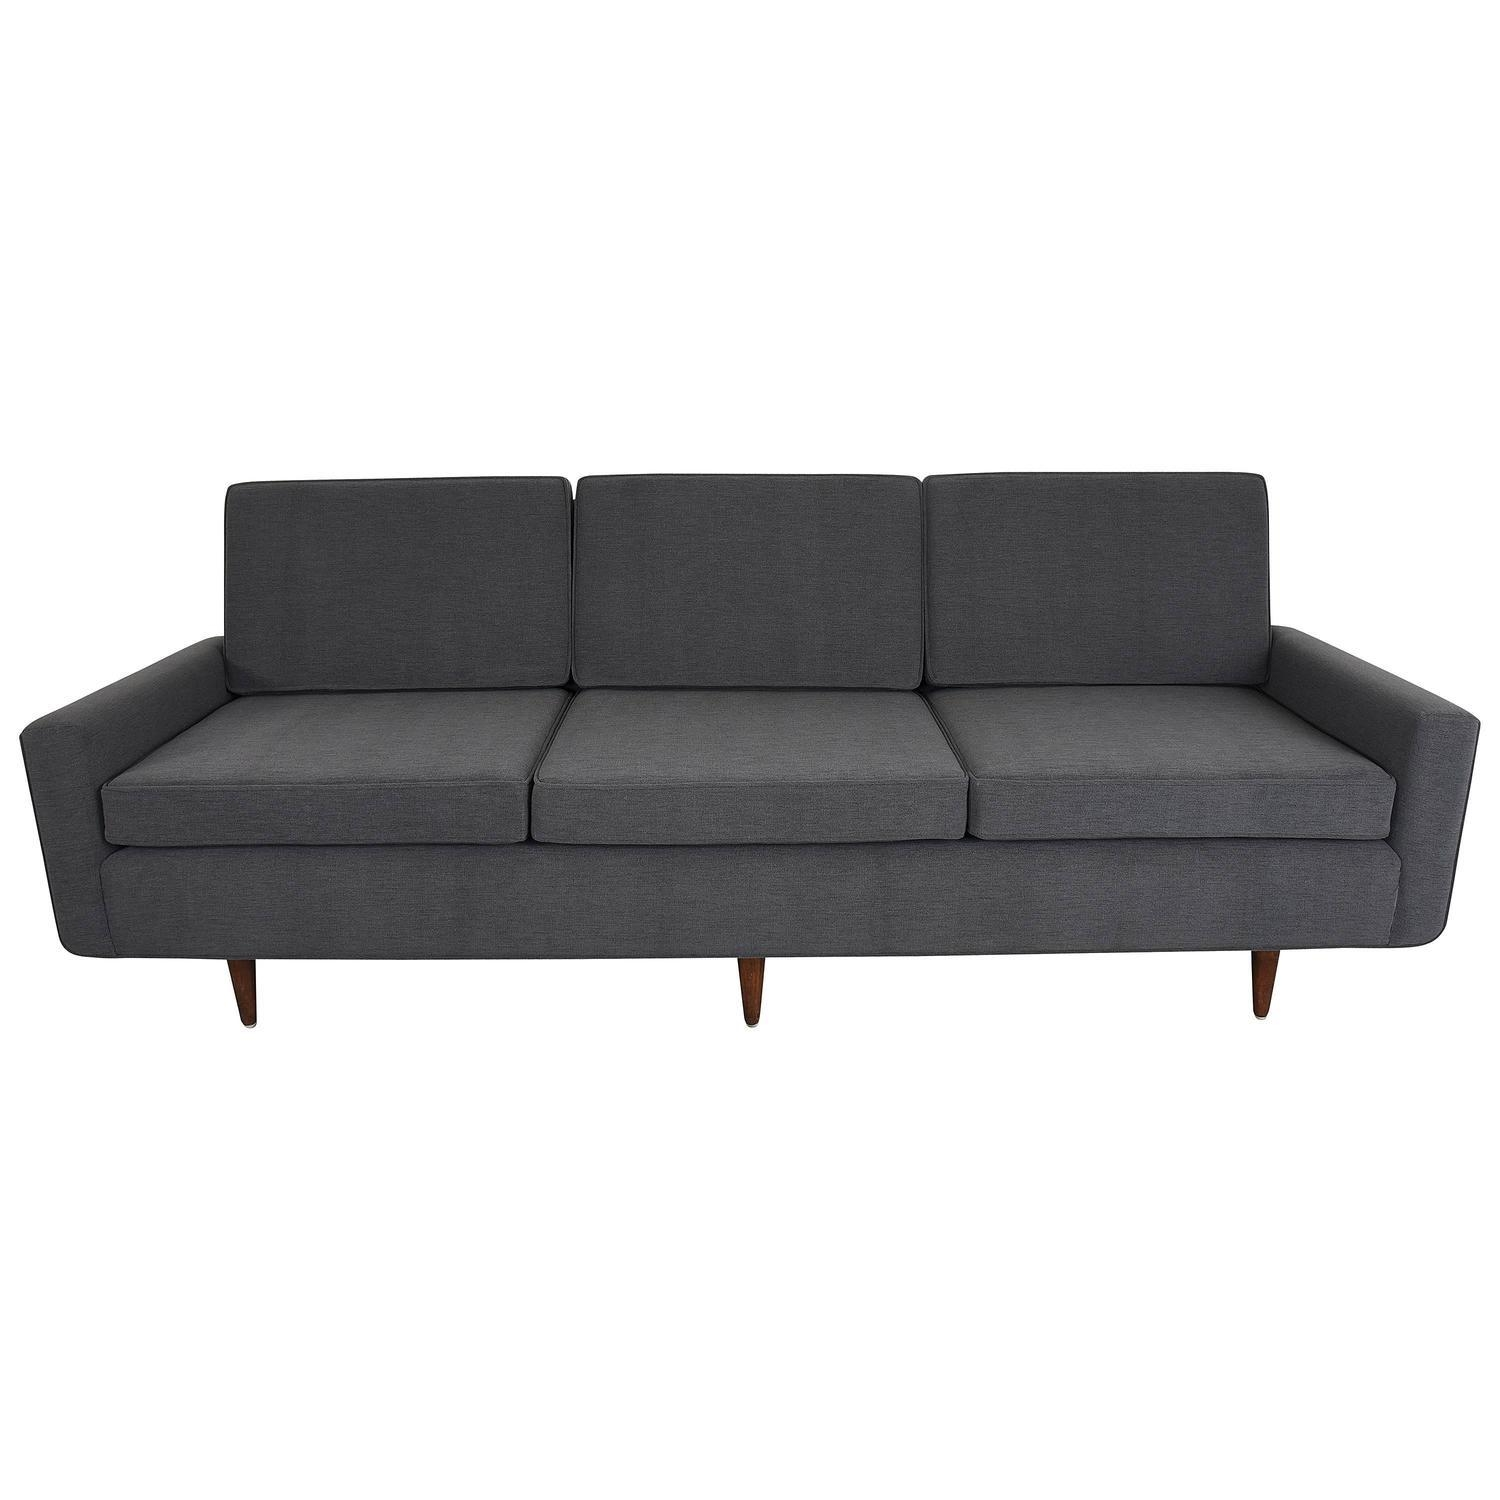 Florence Knoll Sofa Three Seat Sofa, Model 26, Pair Available For Pertaining To Knoll Sofas (Image 11 of 20)